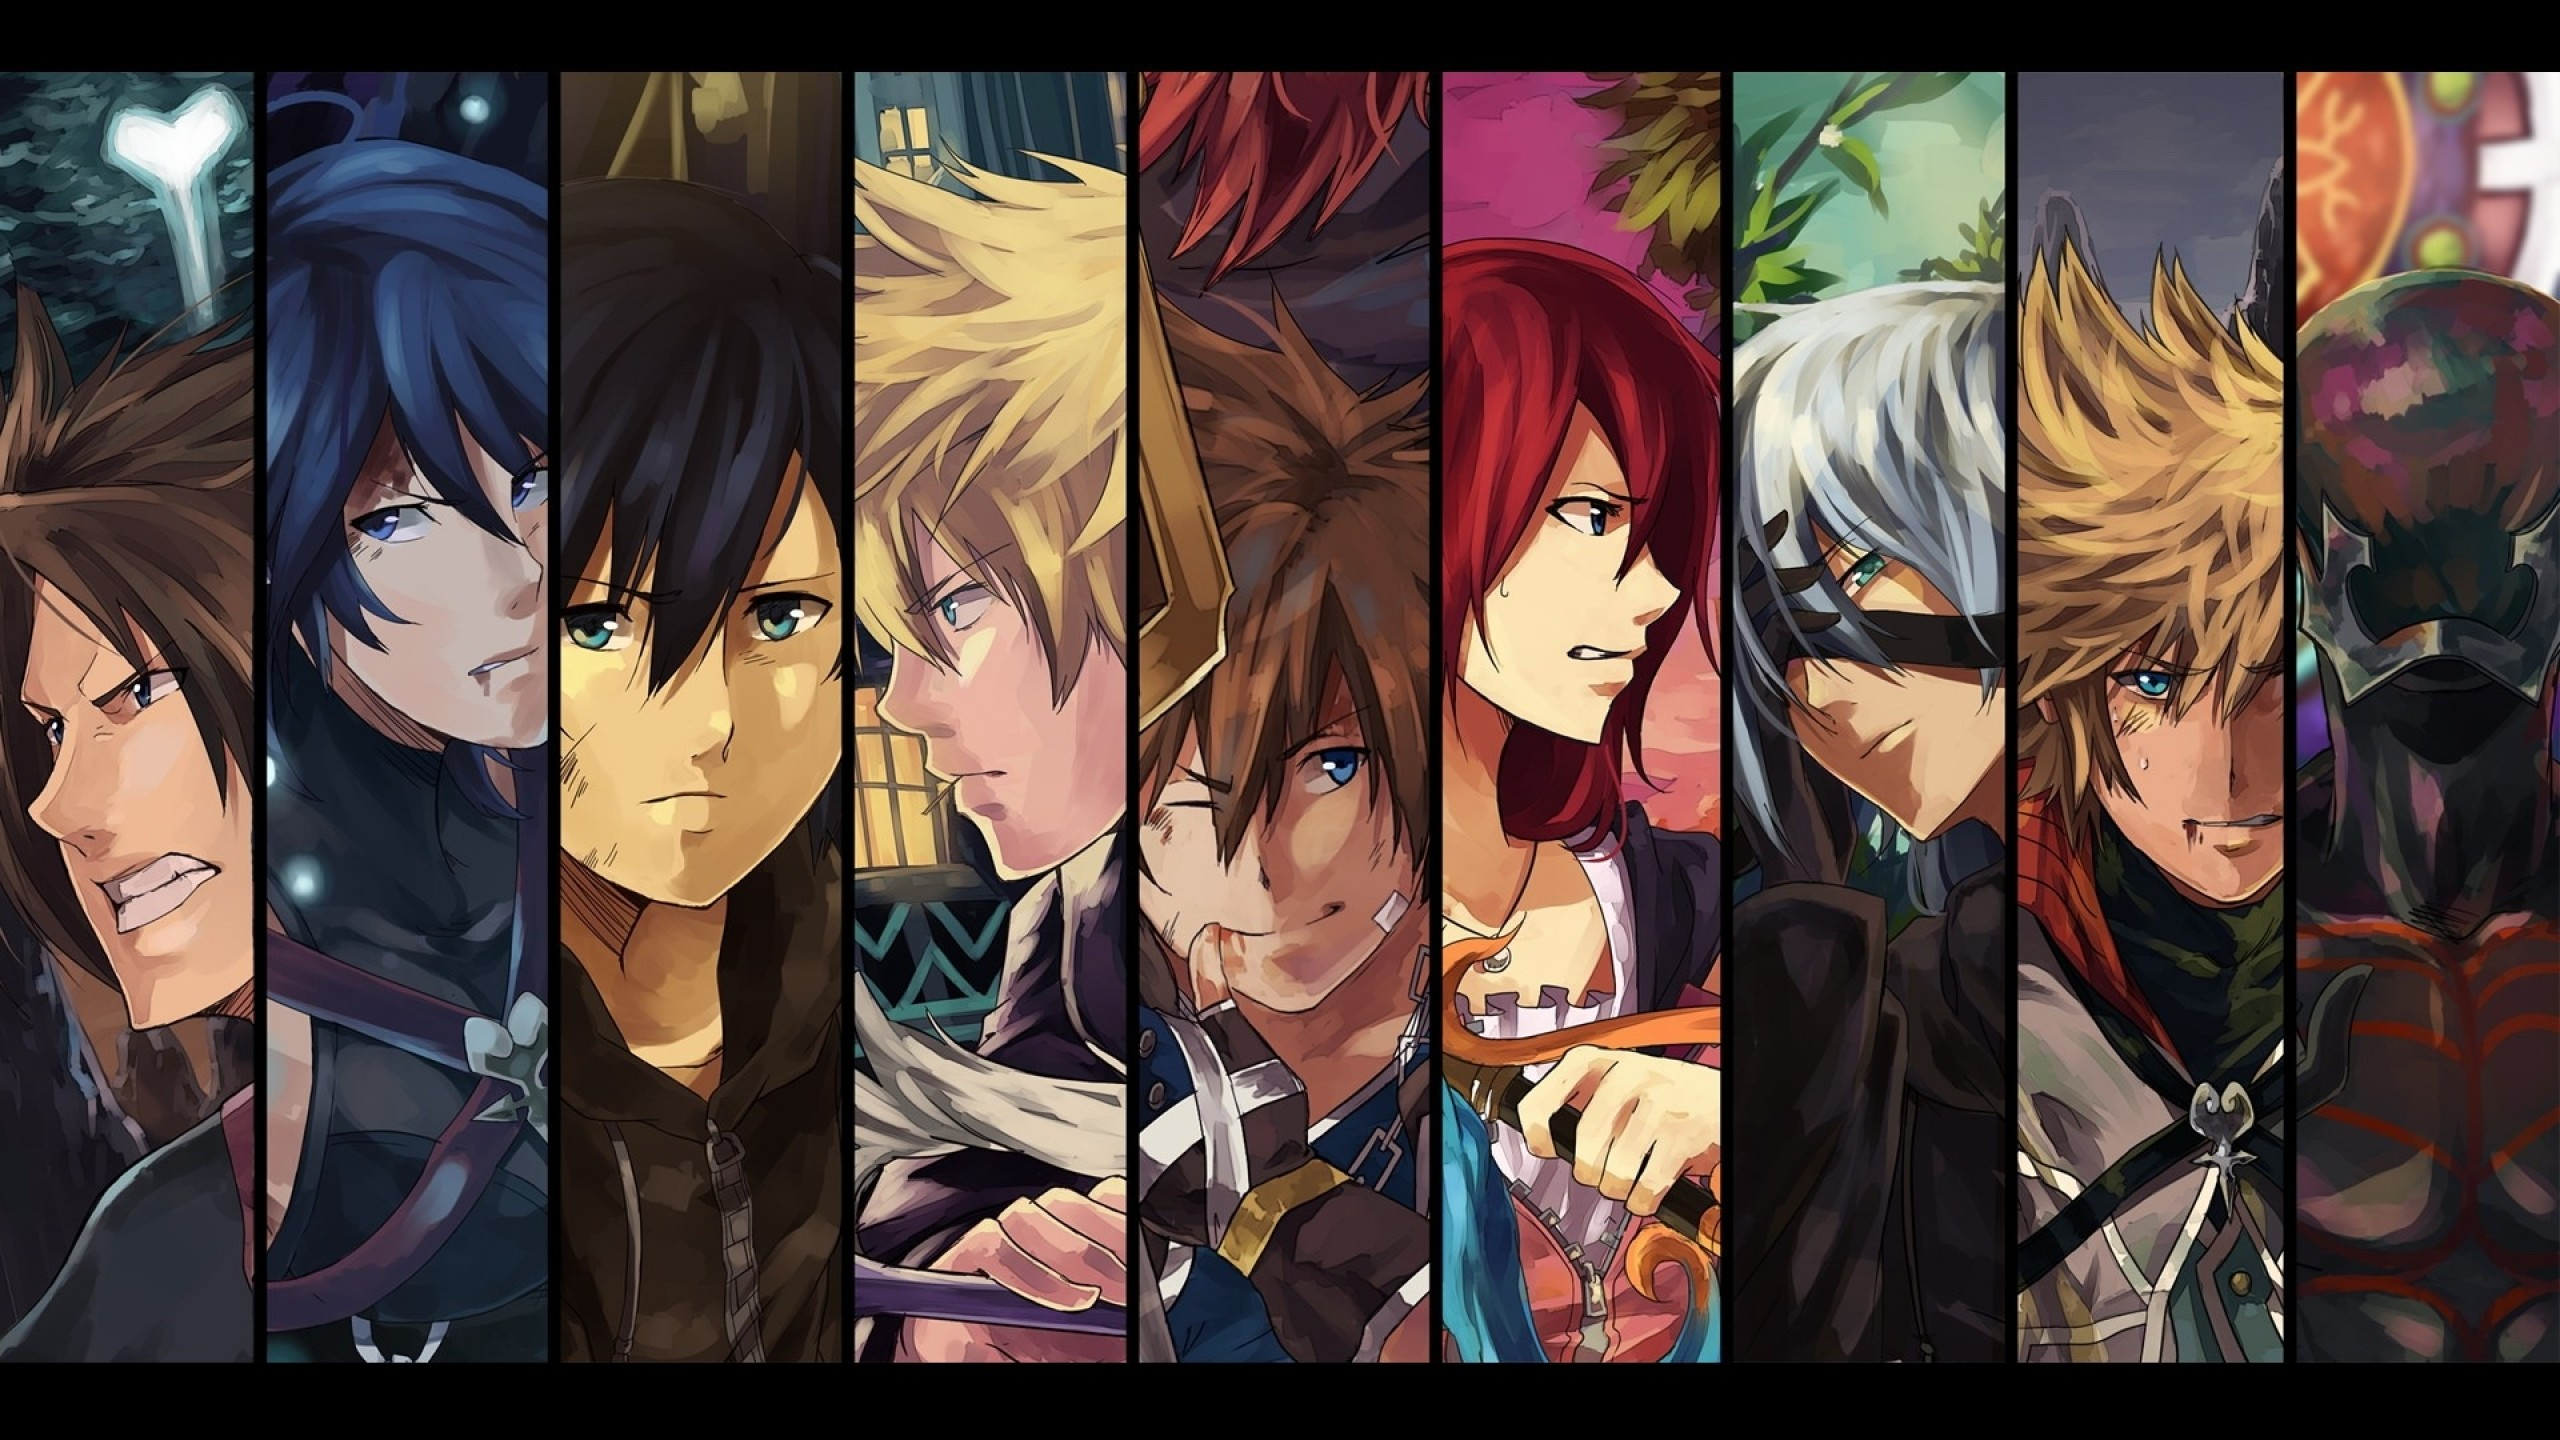 Download Wallpapers, Download kingdom hearts anime .